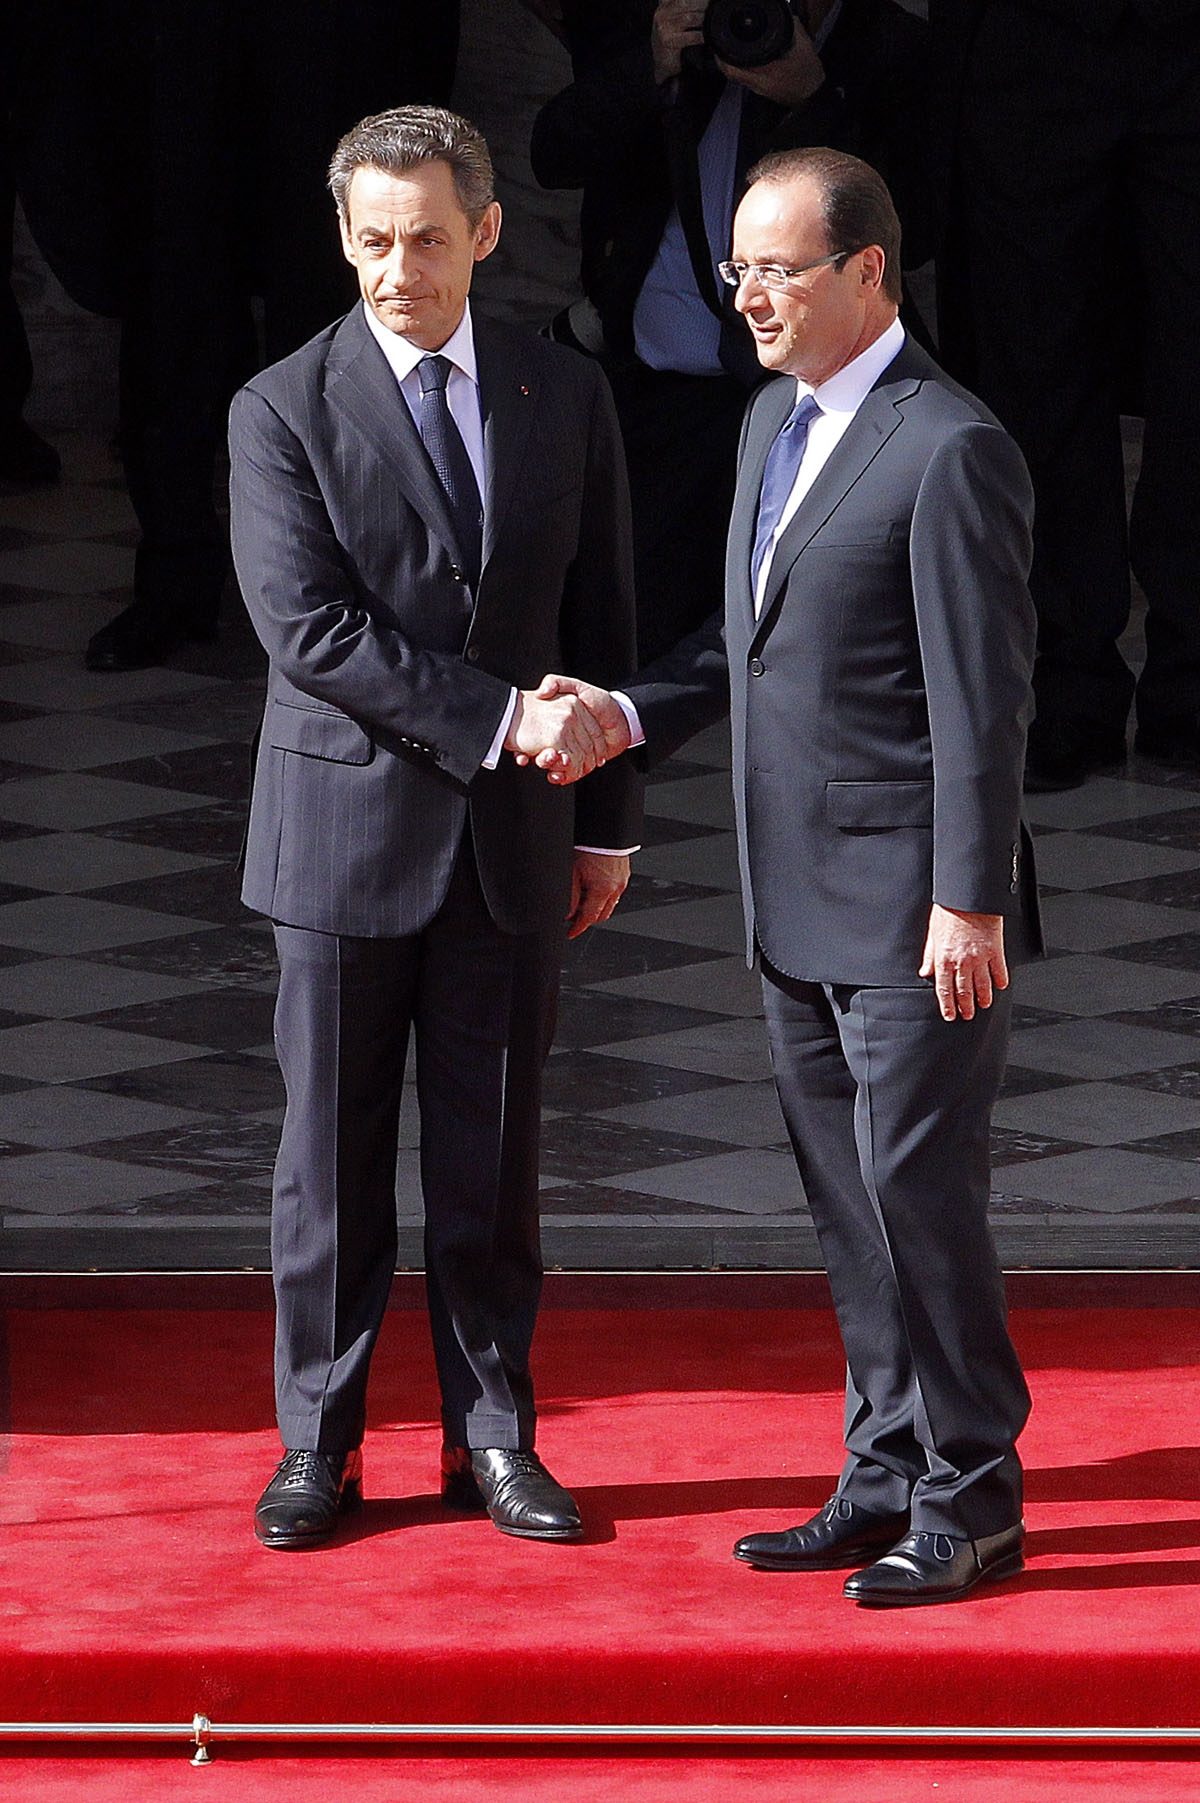 France's President Francois Hollande (R) shakes hands with his predecessor Nicolas Sarkozy (L) prior to the start of the investiture ceremony on May 15, 2012 at the presidential Elysee Palace in Paris.